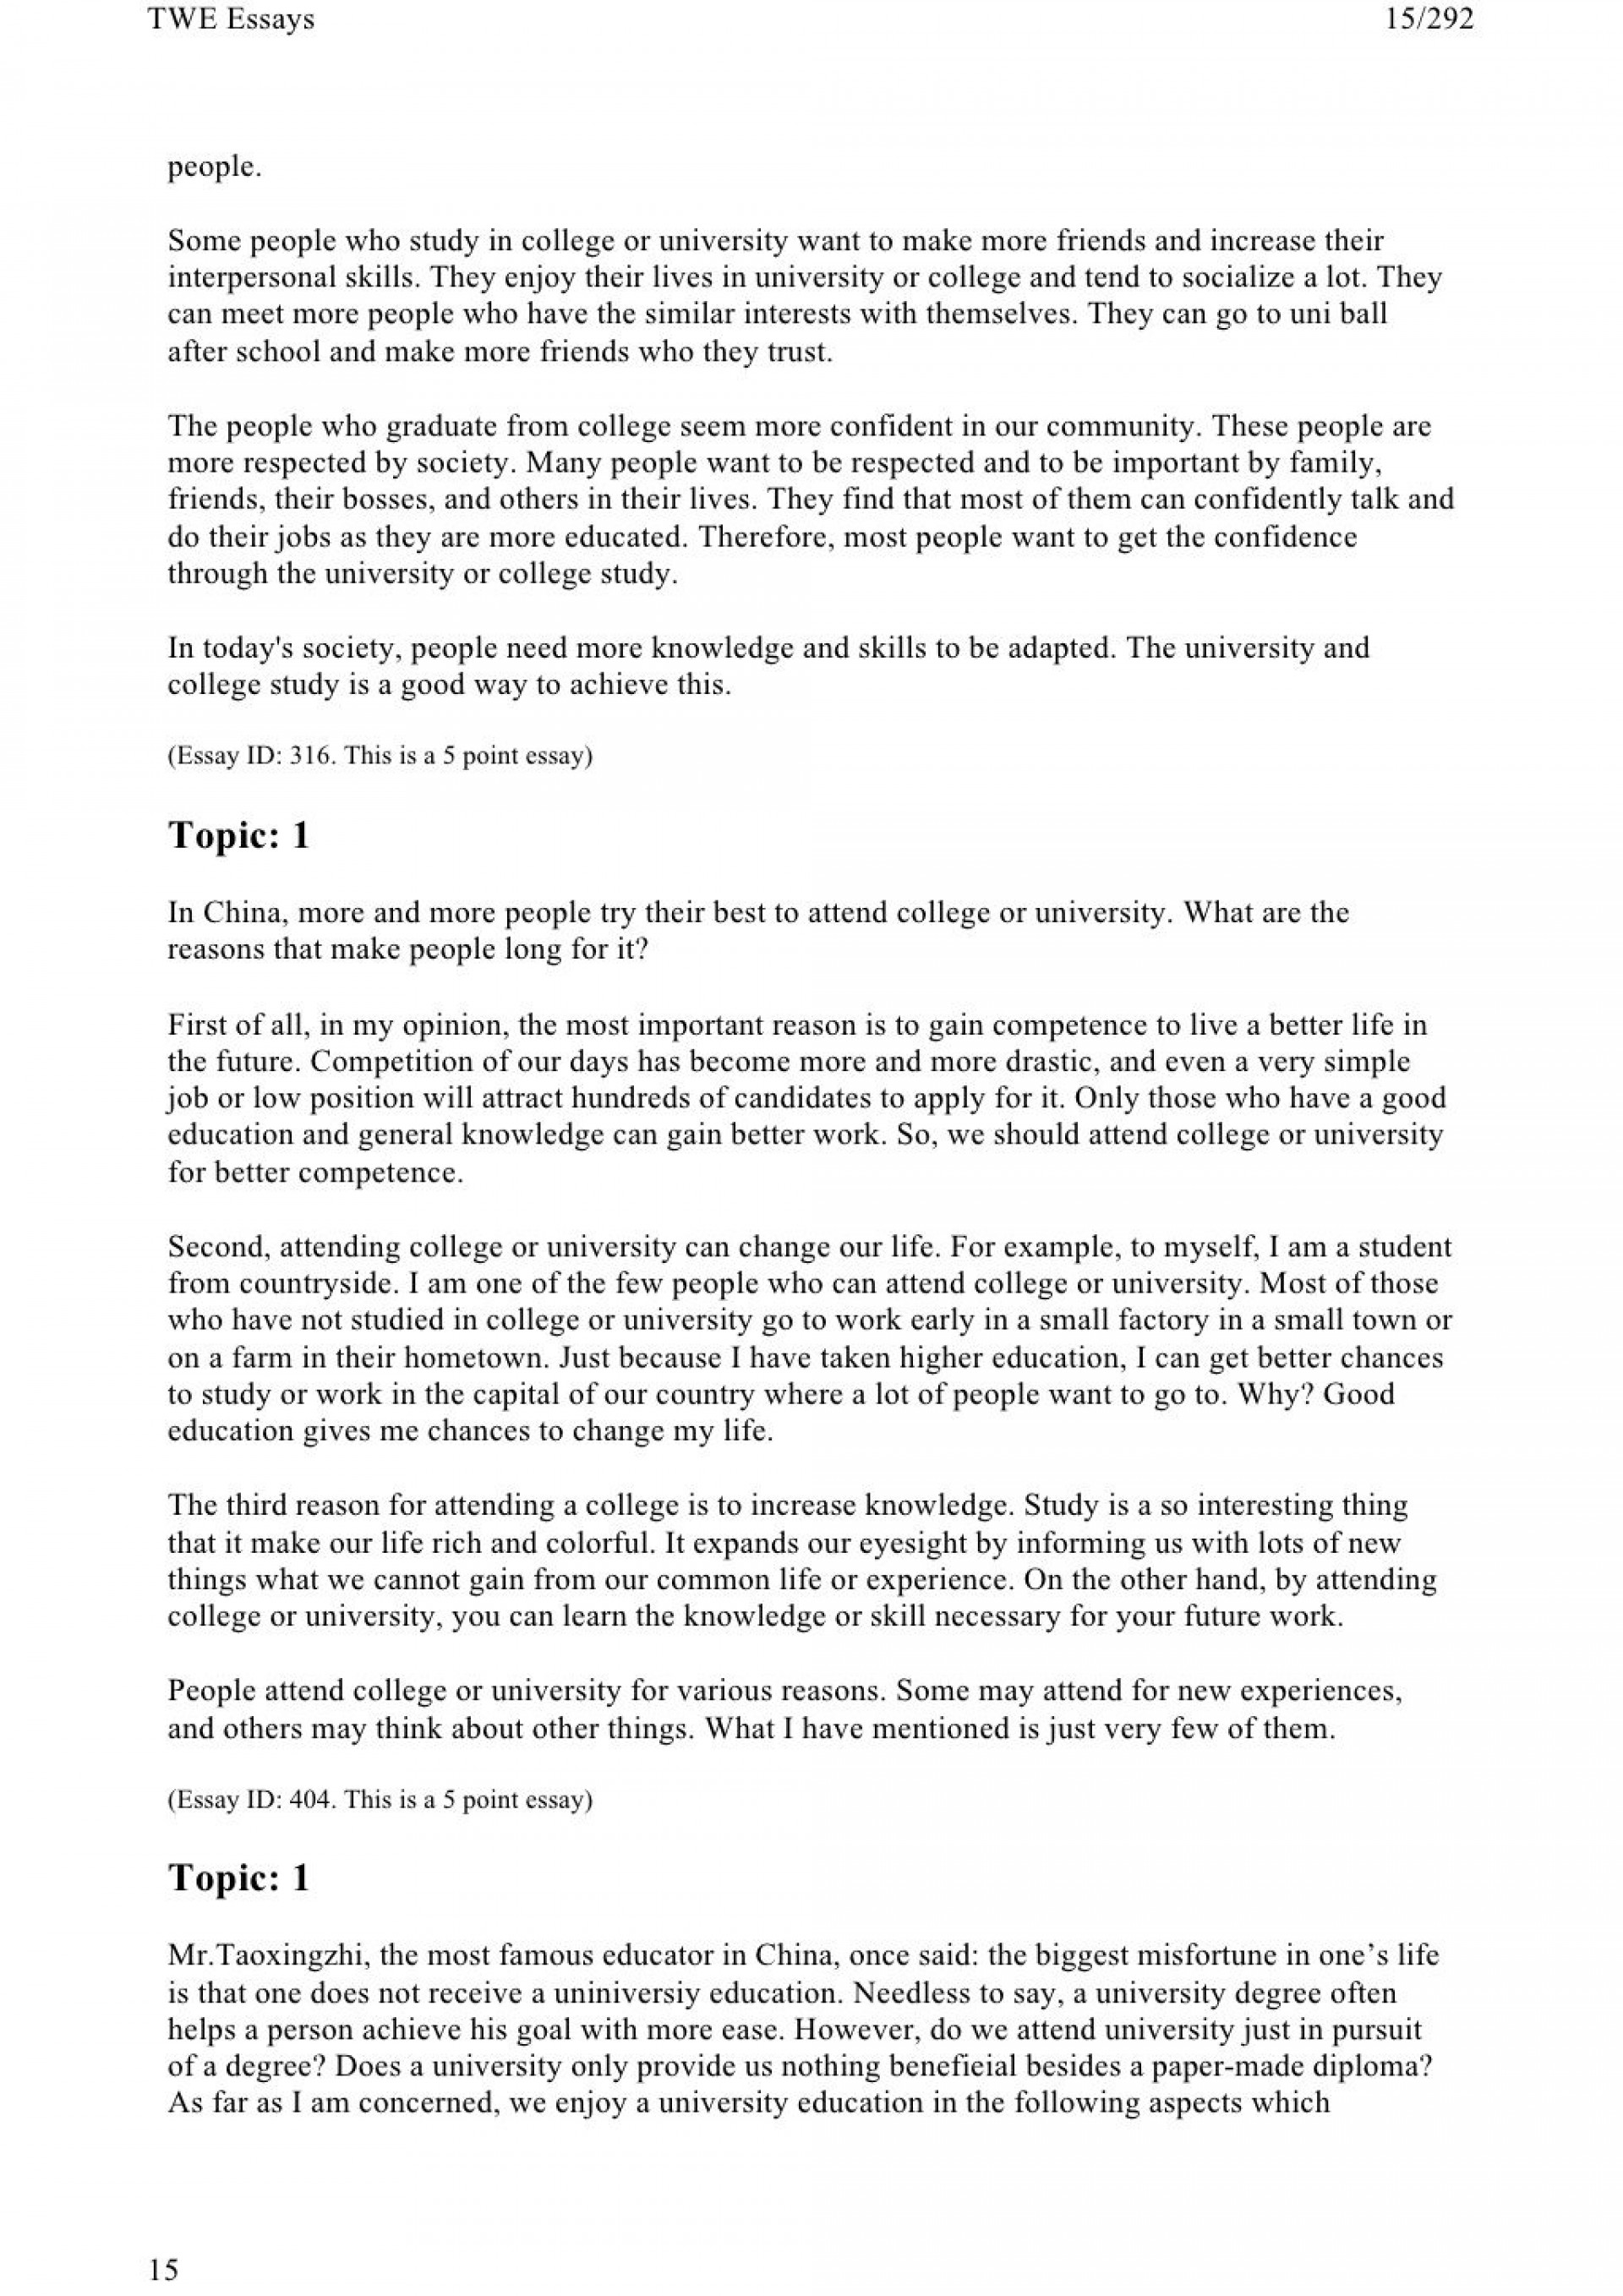 008 Topics In Essay Writing Example Unbelievable Interesting For Competition Hindi Ielts With Answers Pdf 1920